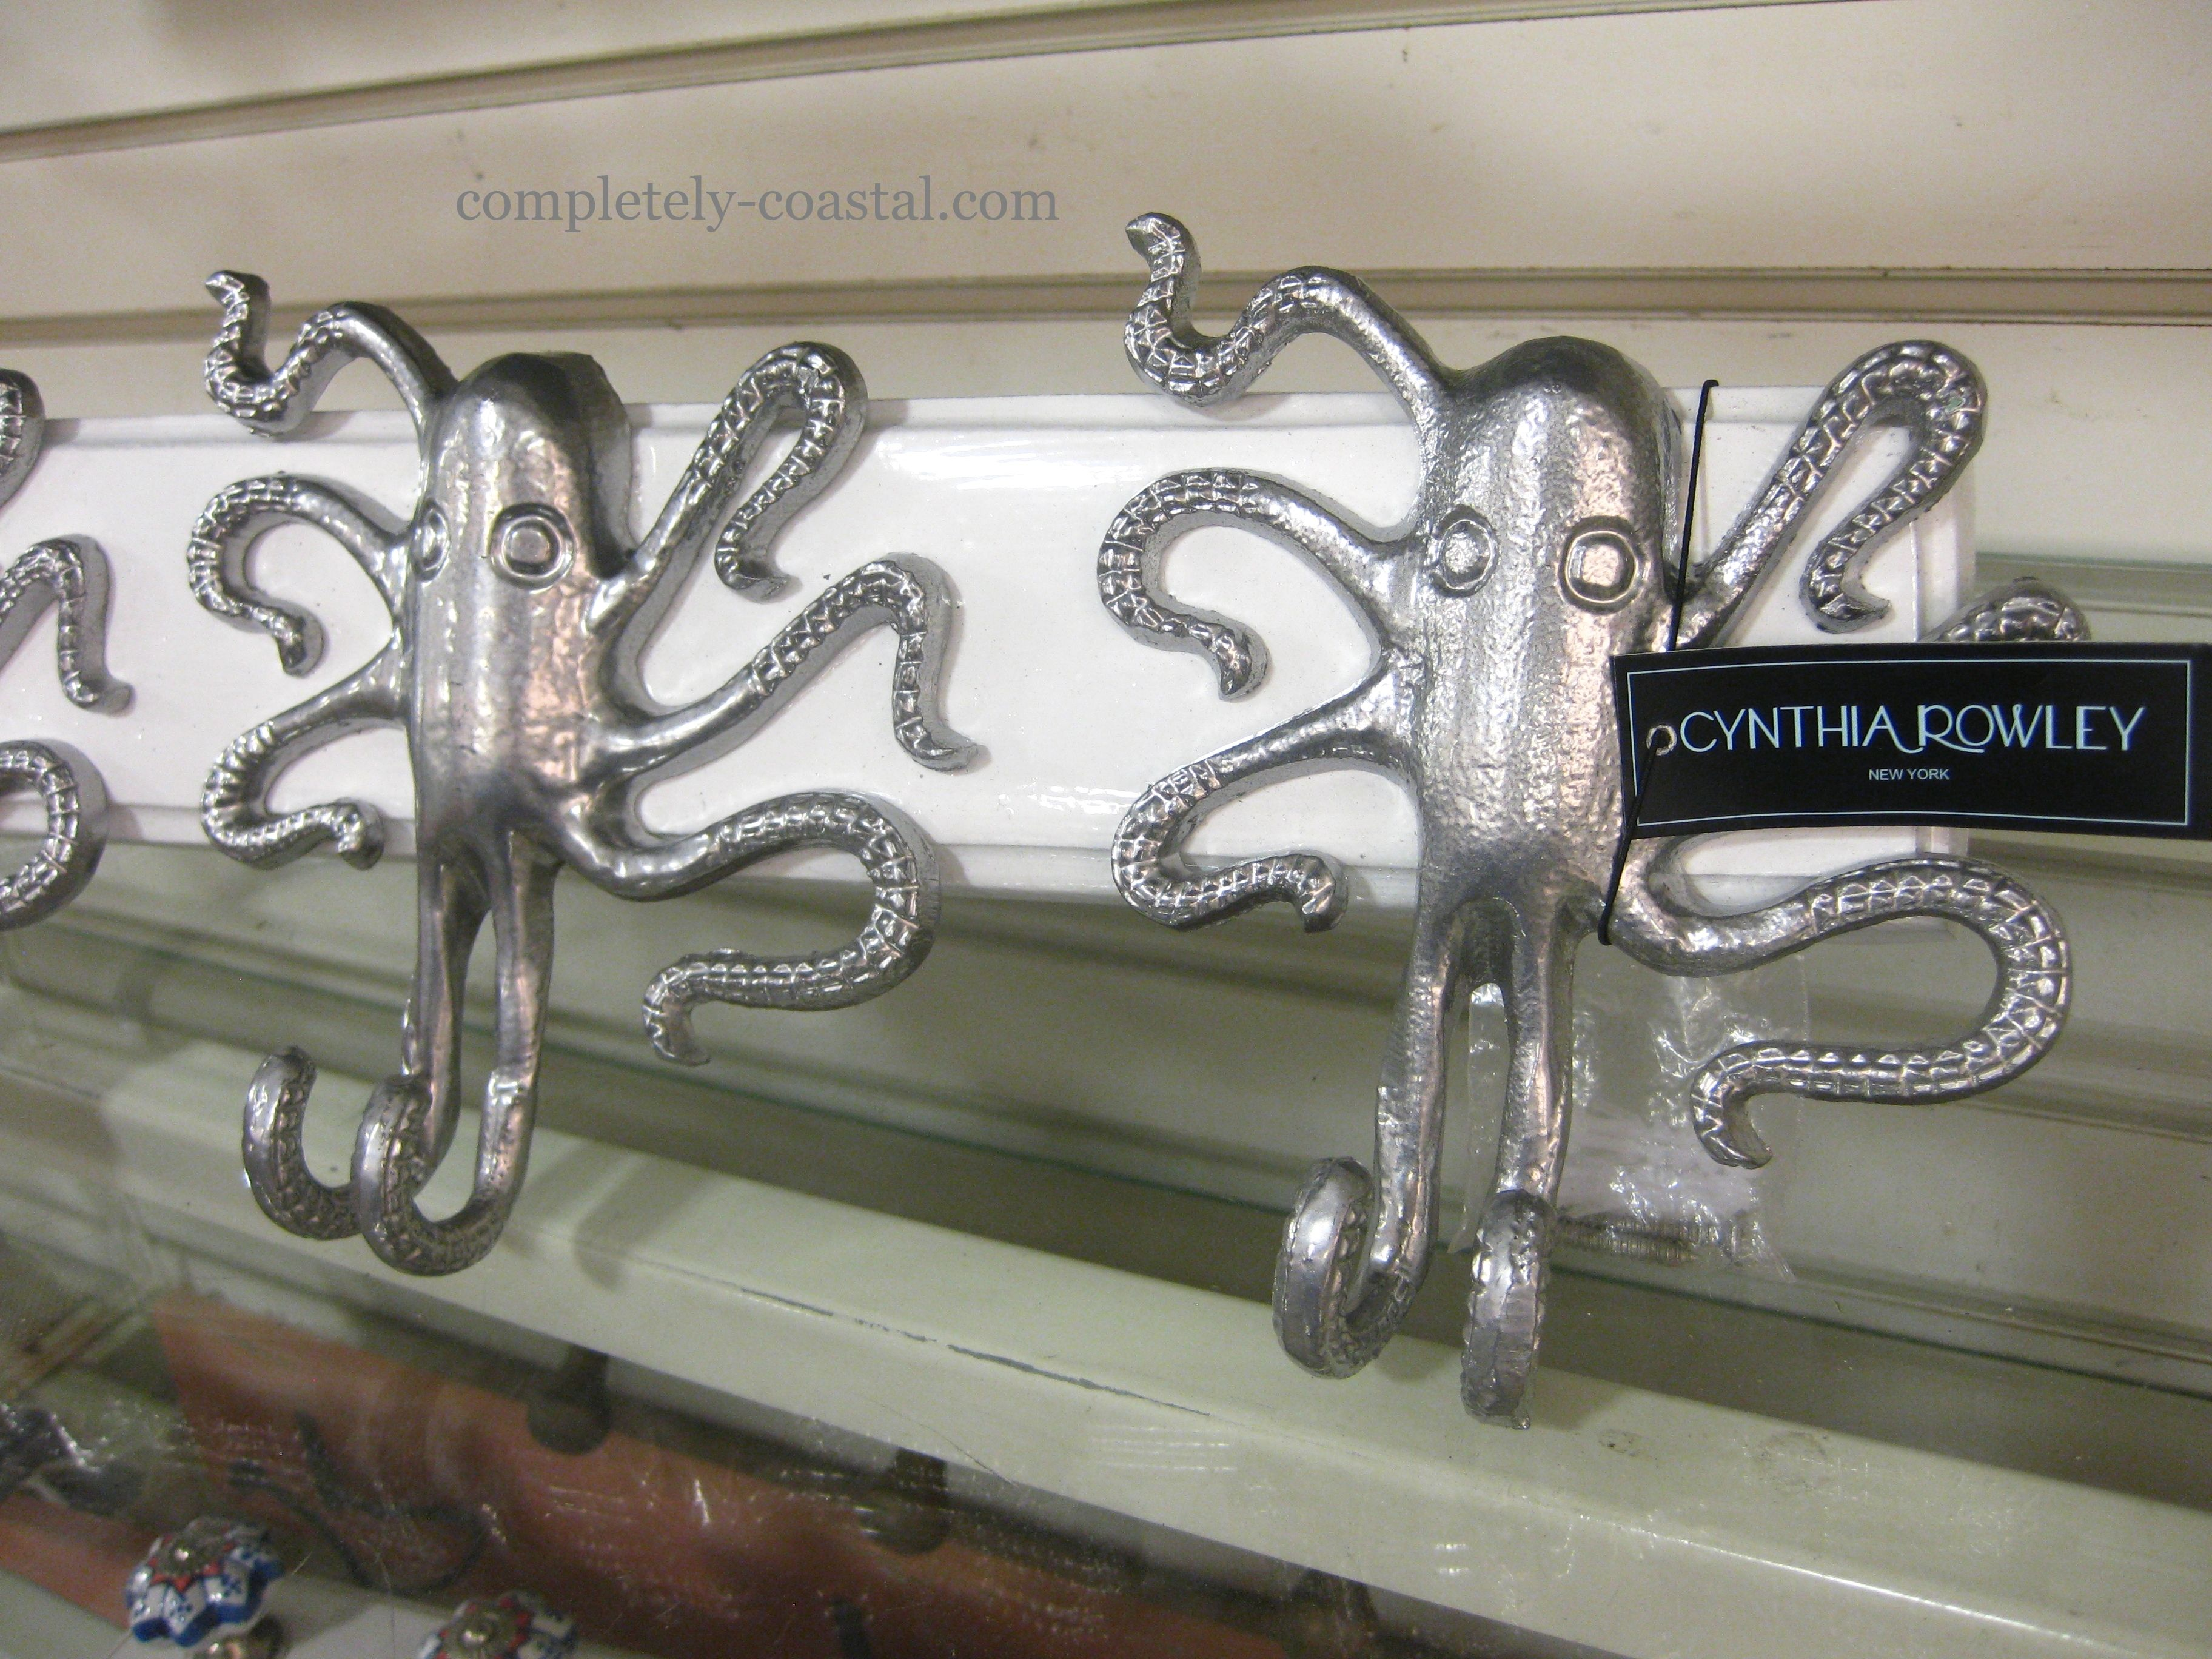 Cool Octopus Hooks Seen At Home Goods In Delray Fl They Had Lots Of Other Great Coastal Decorations Too